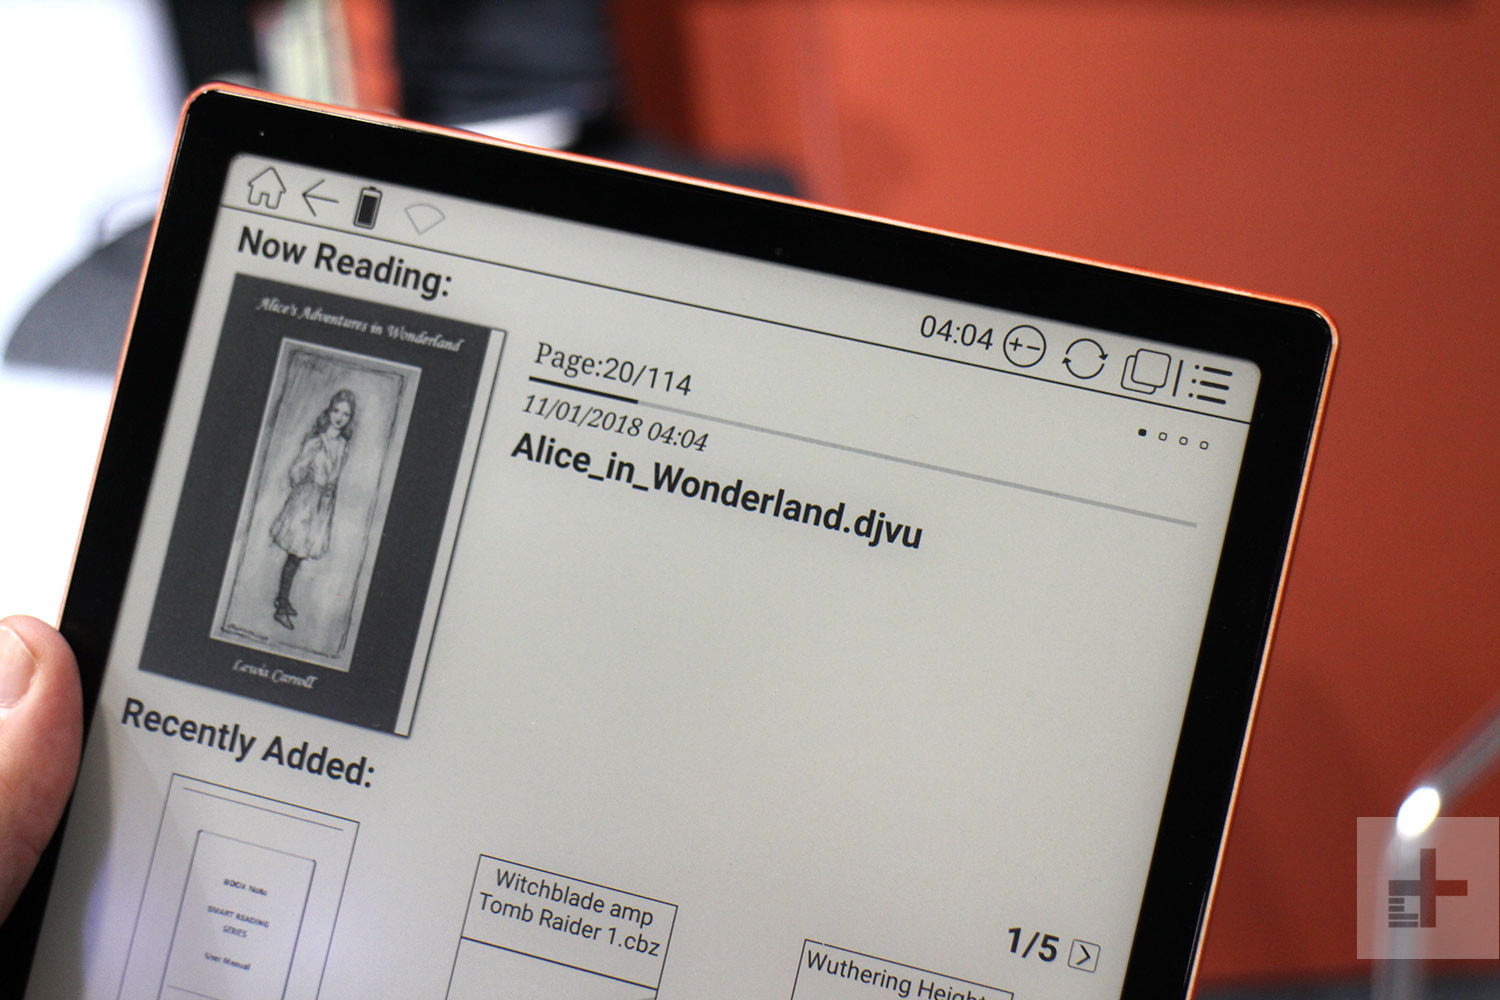 Boox Max 2 And Boox Note Pro Ebook Readers Hands-on Review